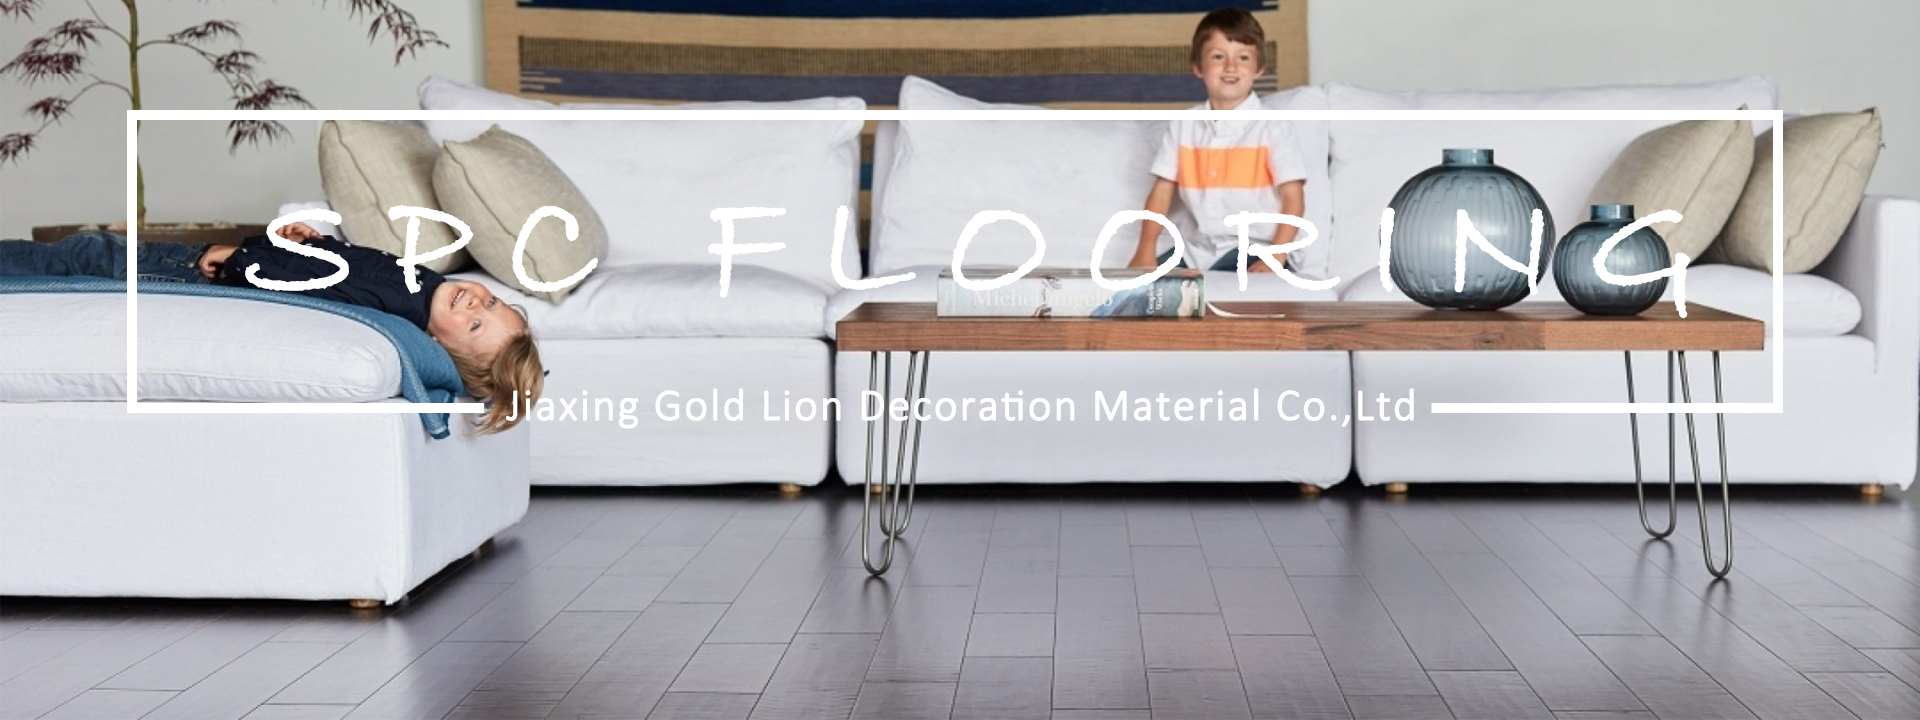 Gold Lion Spc Floors